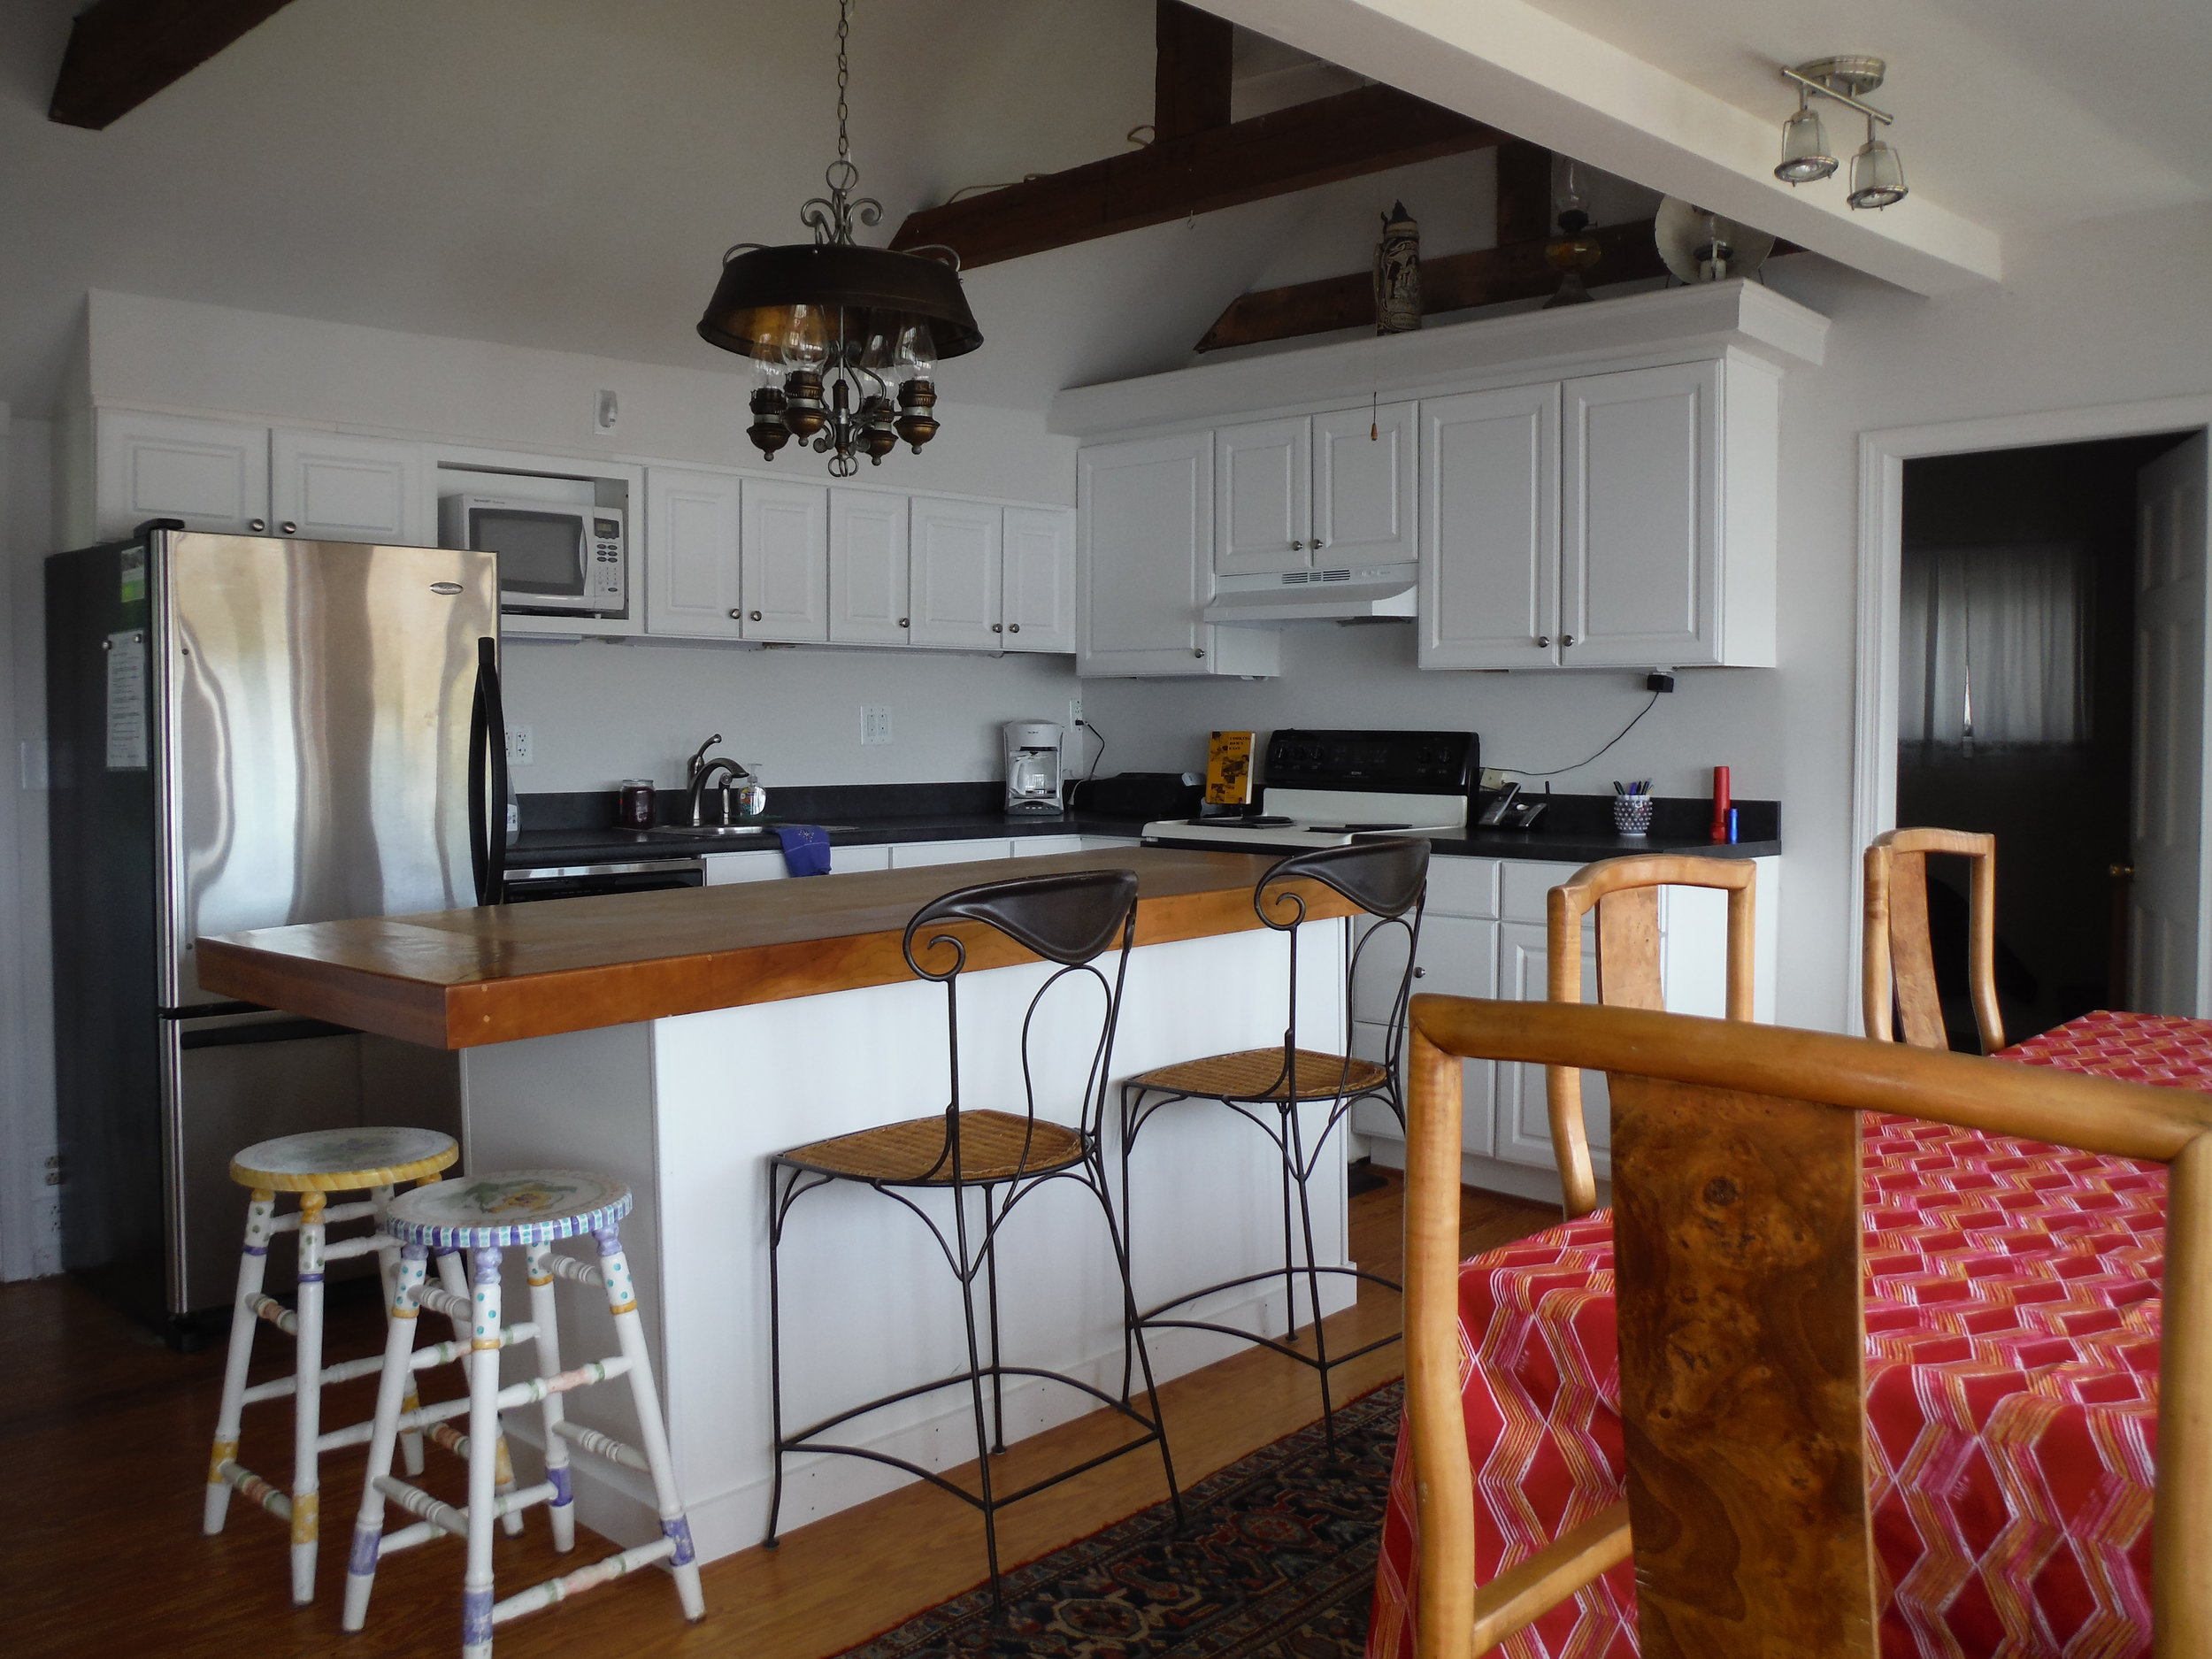 Kitchen island seating and dining table